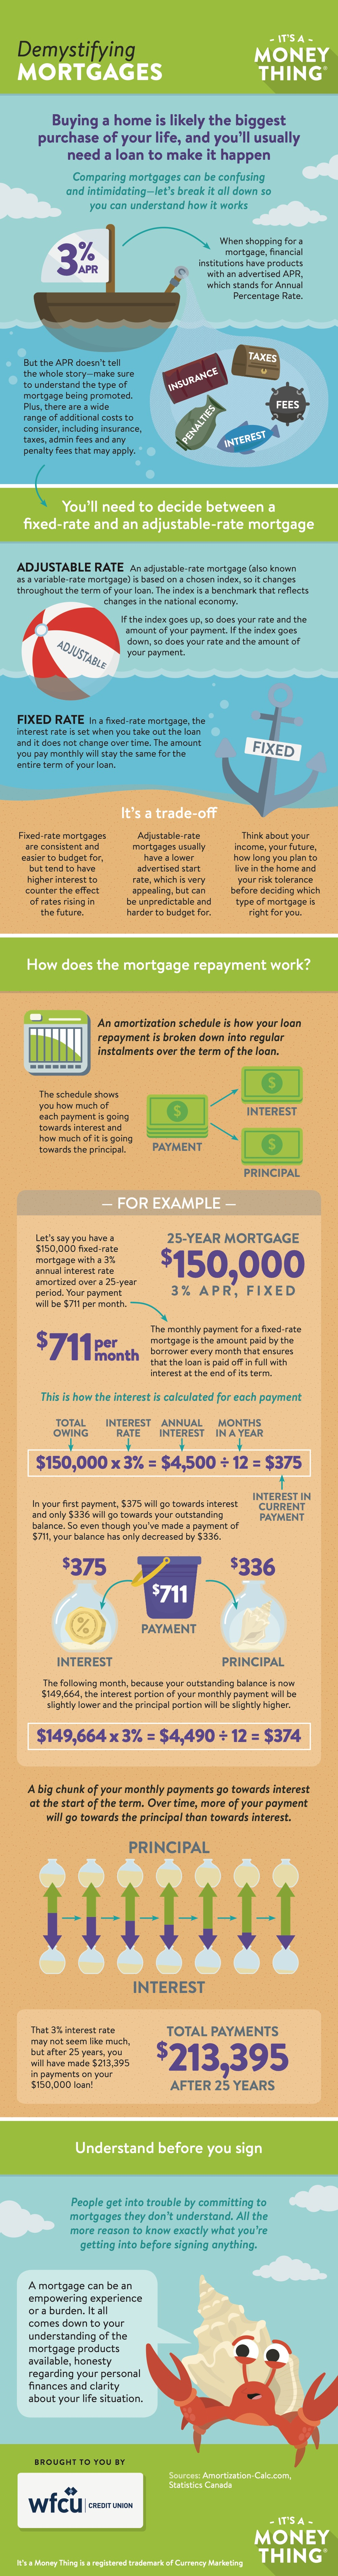 Demystifying Mortgages Infographic